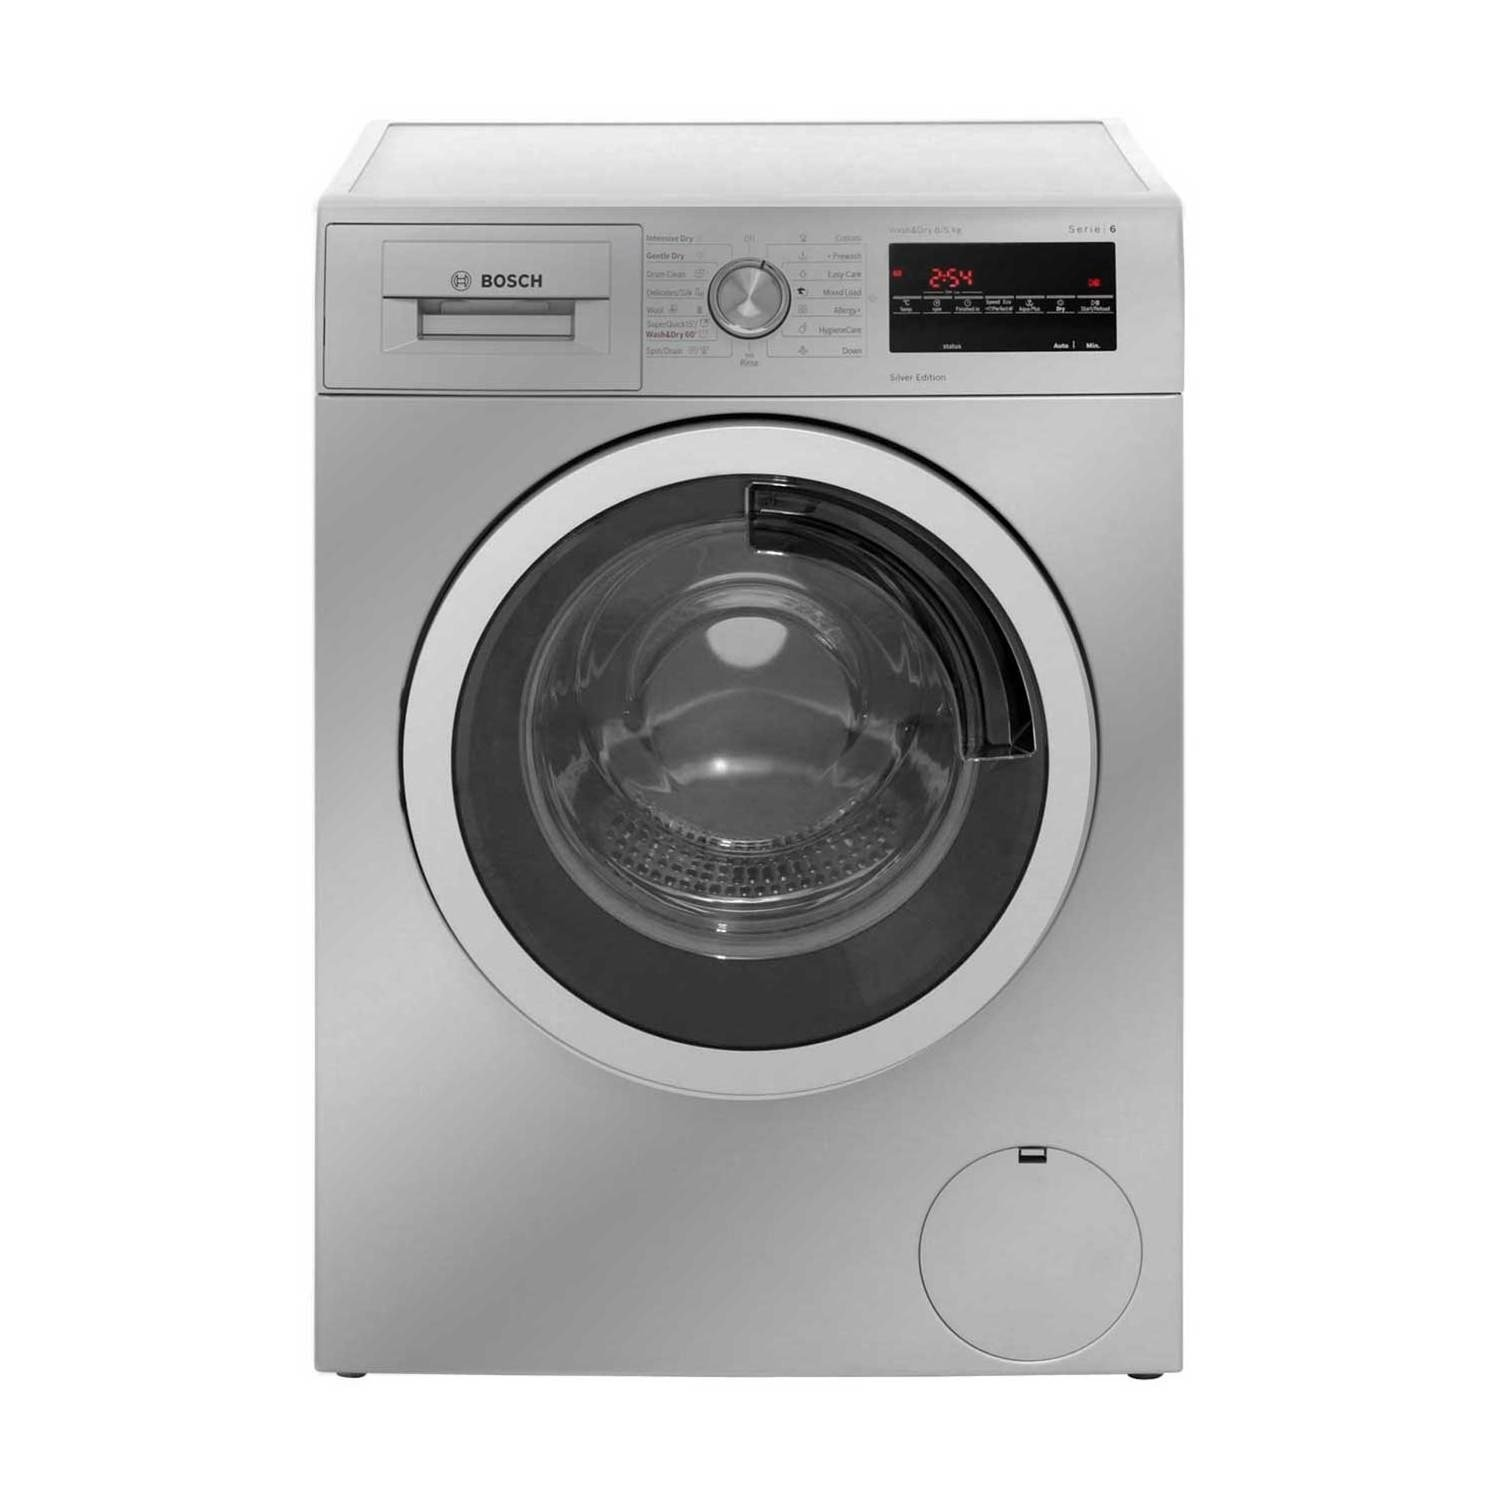 Bosch wvg3046sgb Freestanding 8 kg 1500rpm A Silver Front Load